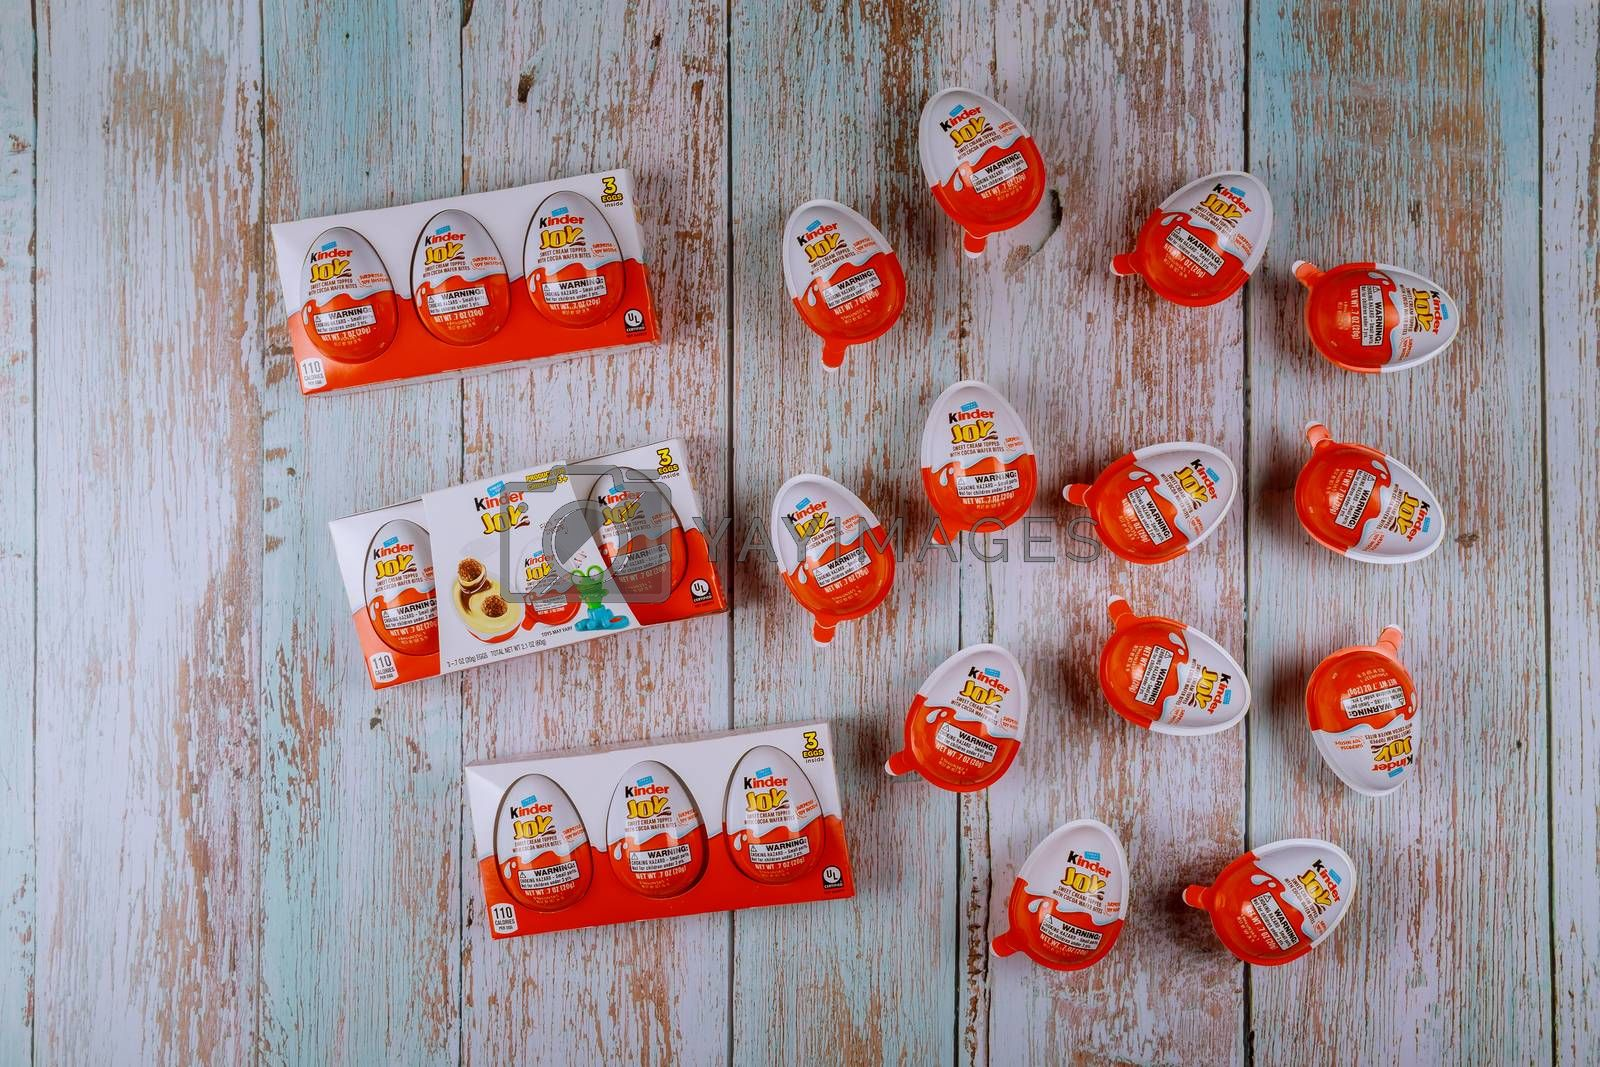 Kinder Joy Surprise Egg Chocolate kinder Joy is a surprise egg containing chocolate and toys. by ungvar